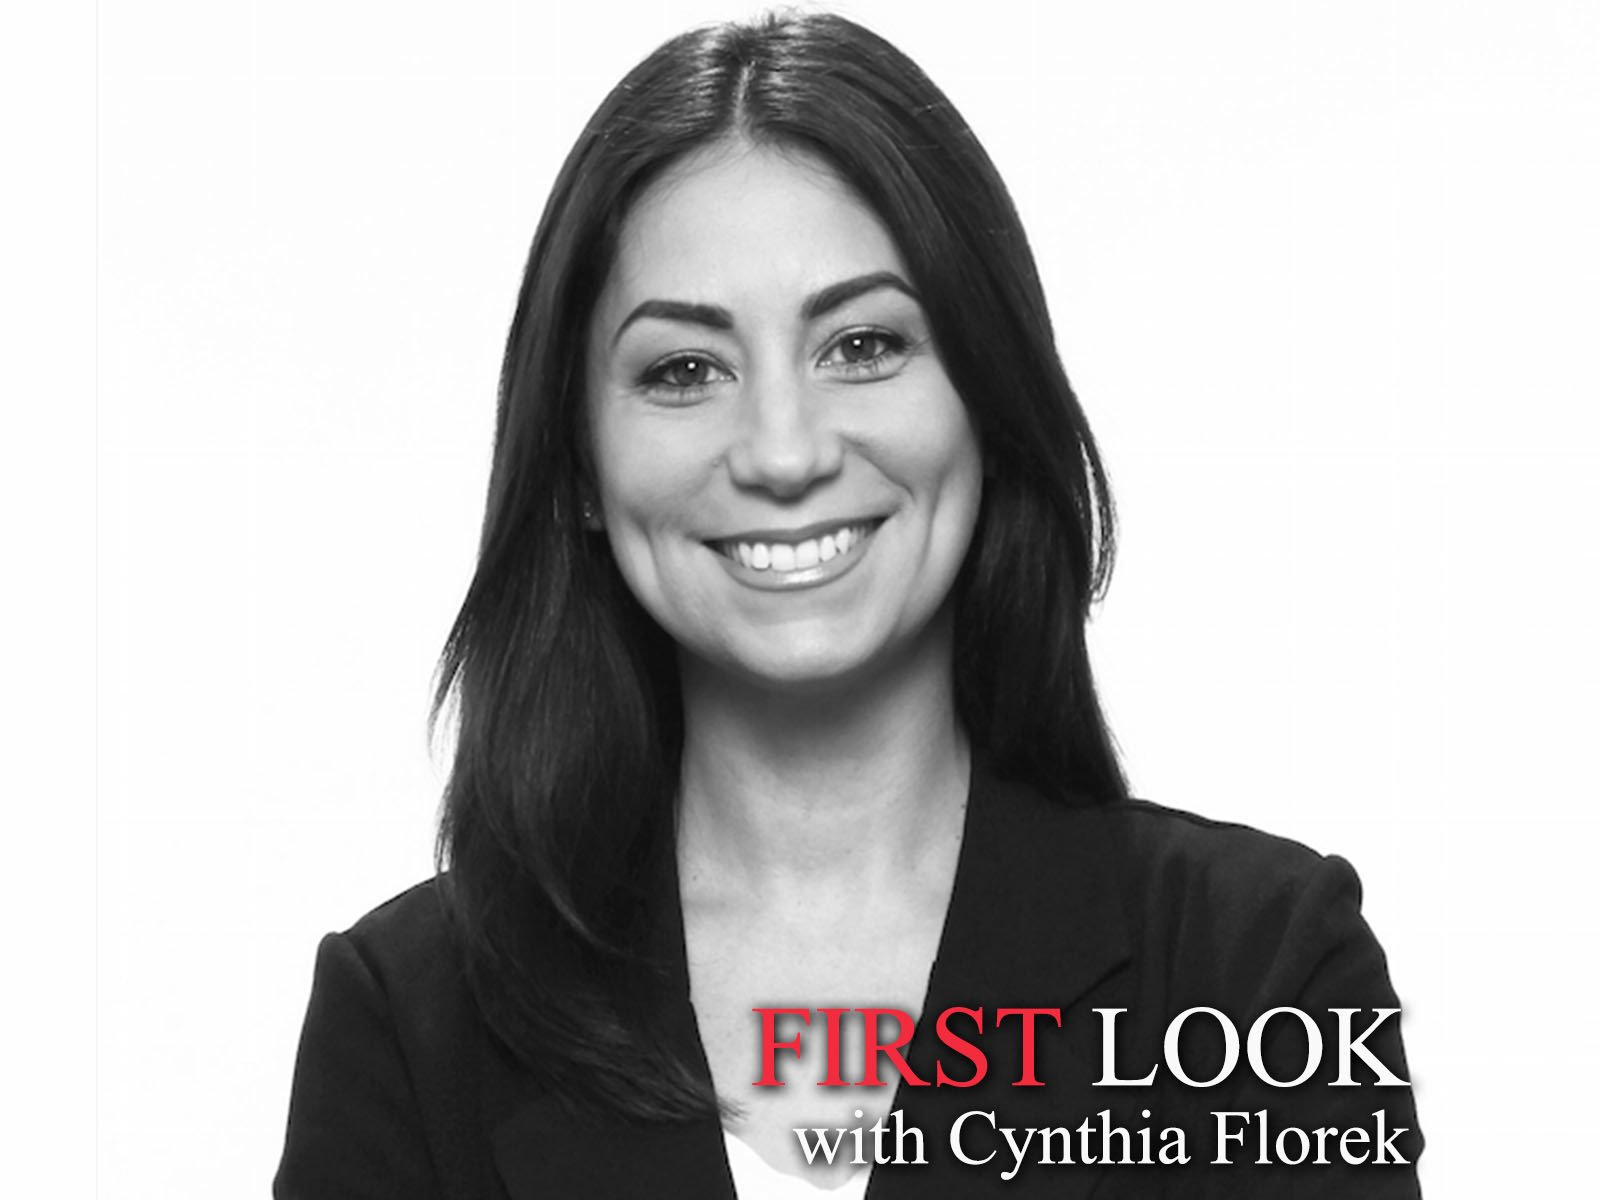 First Look with Cynthia Florek on Amazon Prime Instant Video UK